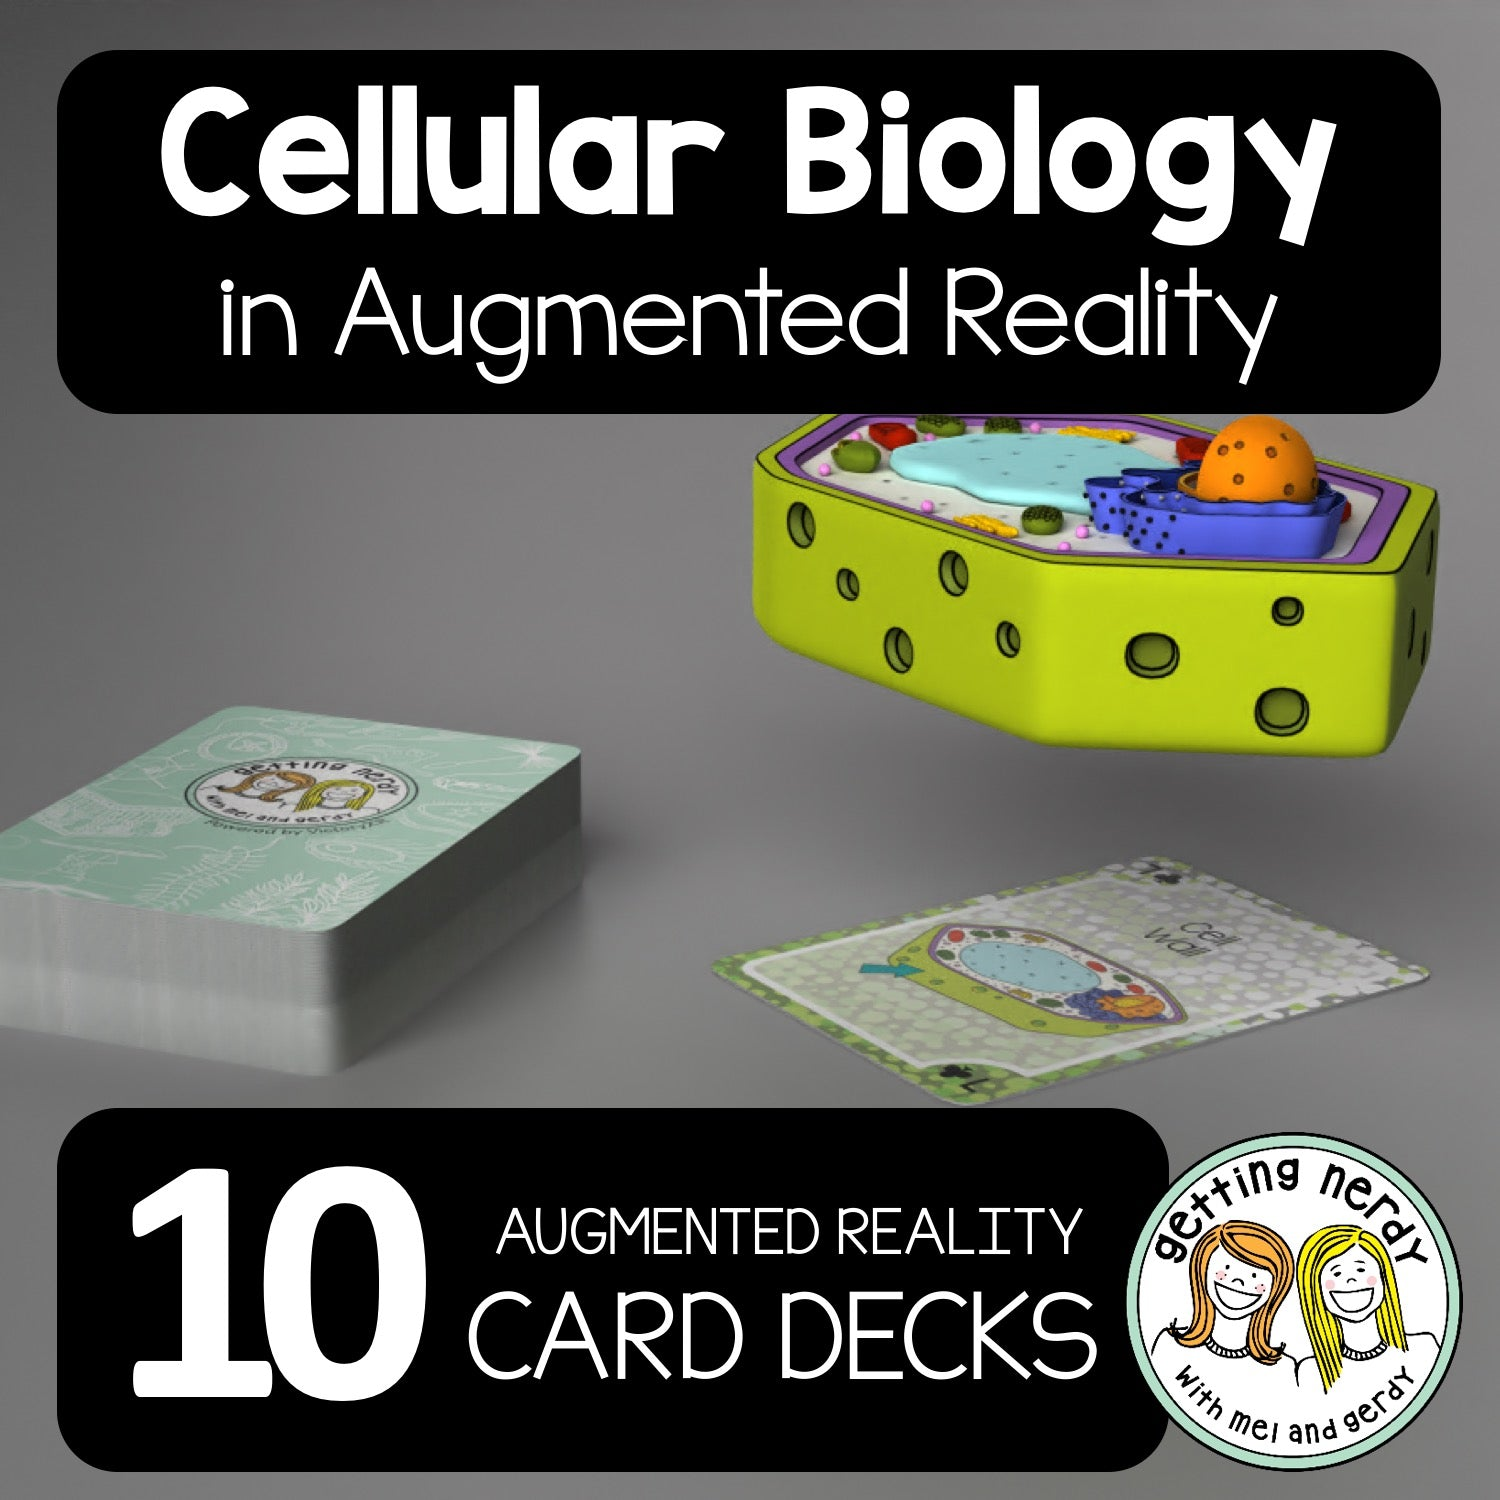 'Getting Nerdy' Cellular Biology Augmented Reality Card Deck - 10X Bundle